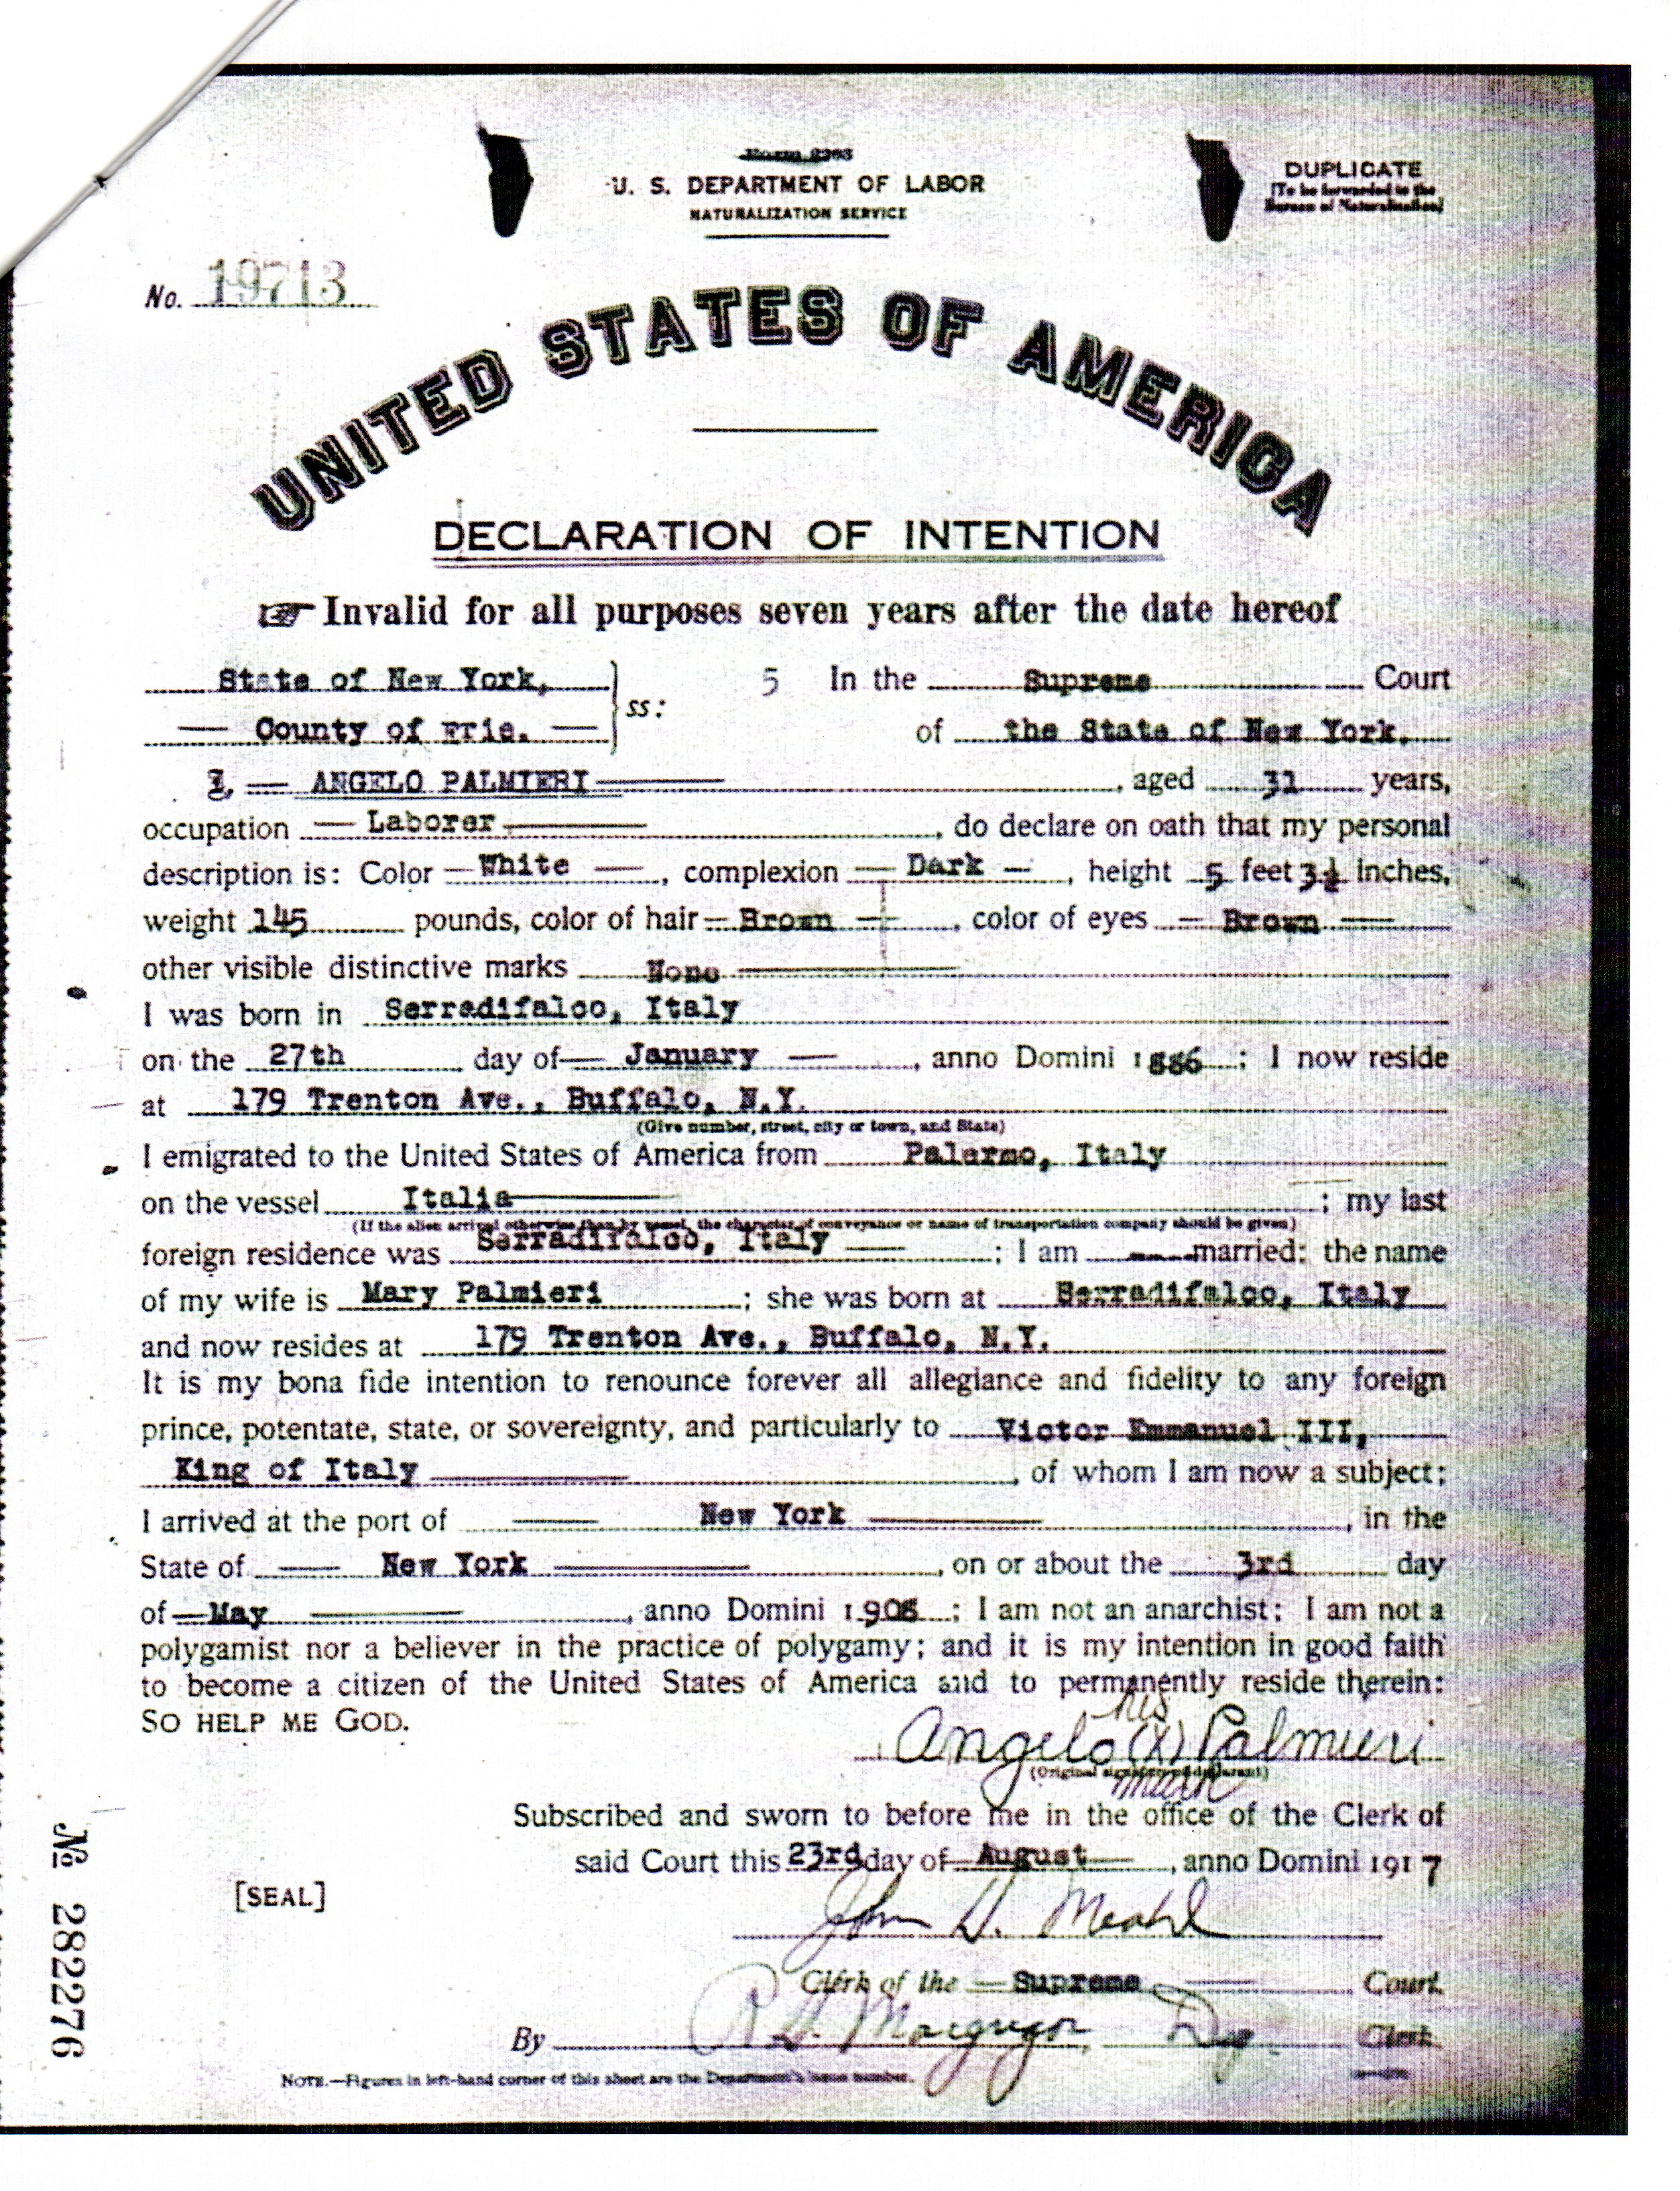 Naturalization genealogy and jure sanguinis my great grandfathers naturalization papers arrive xflitez Choice Image